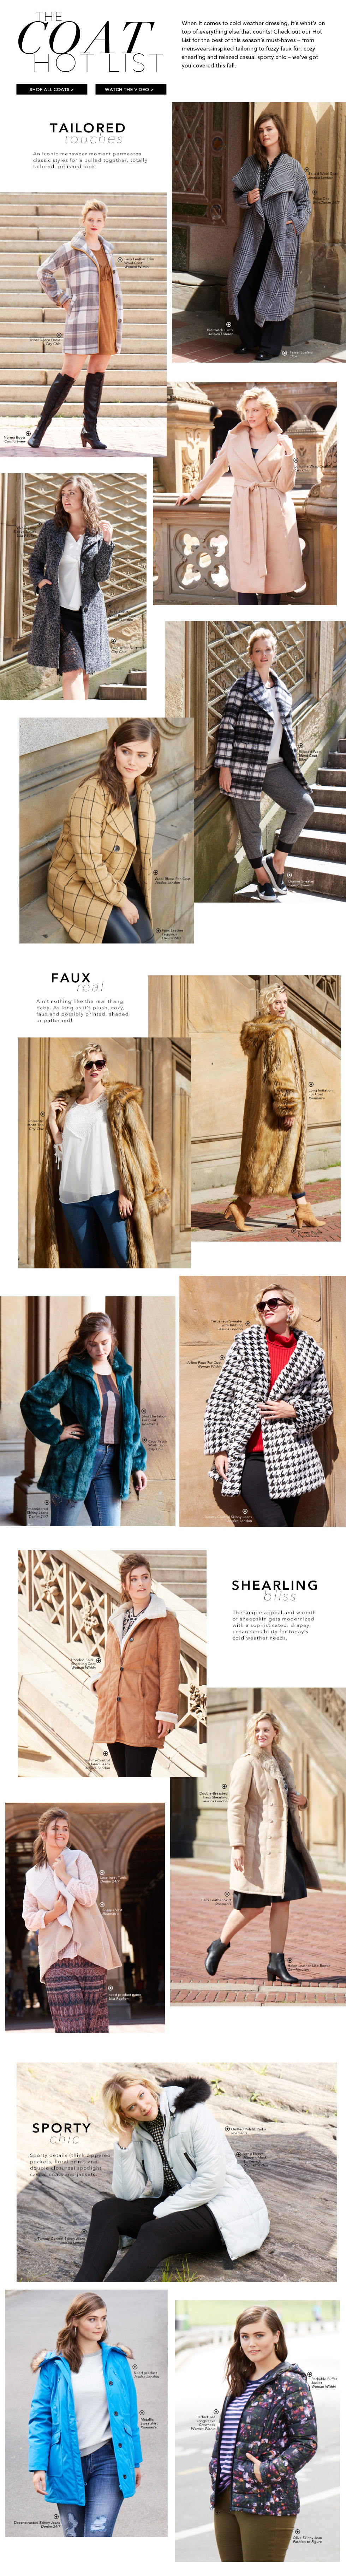 LOOKBOOK_COATS_100316.jpg